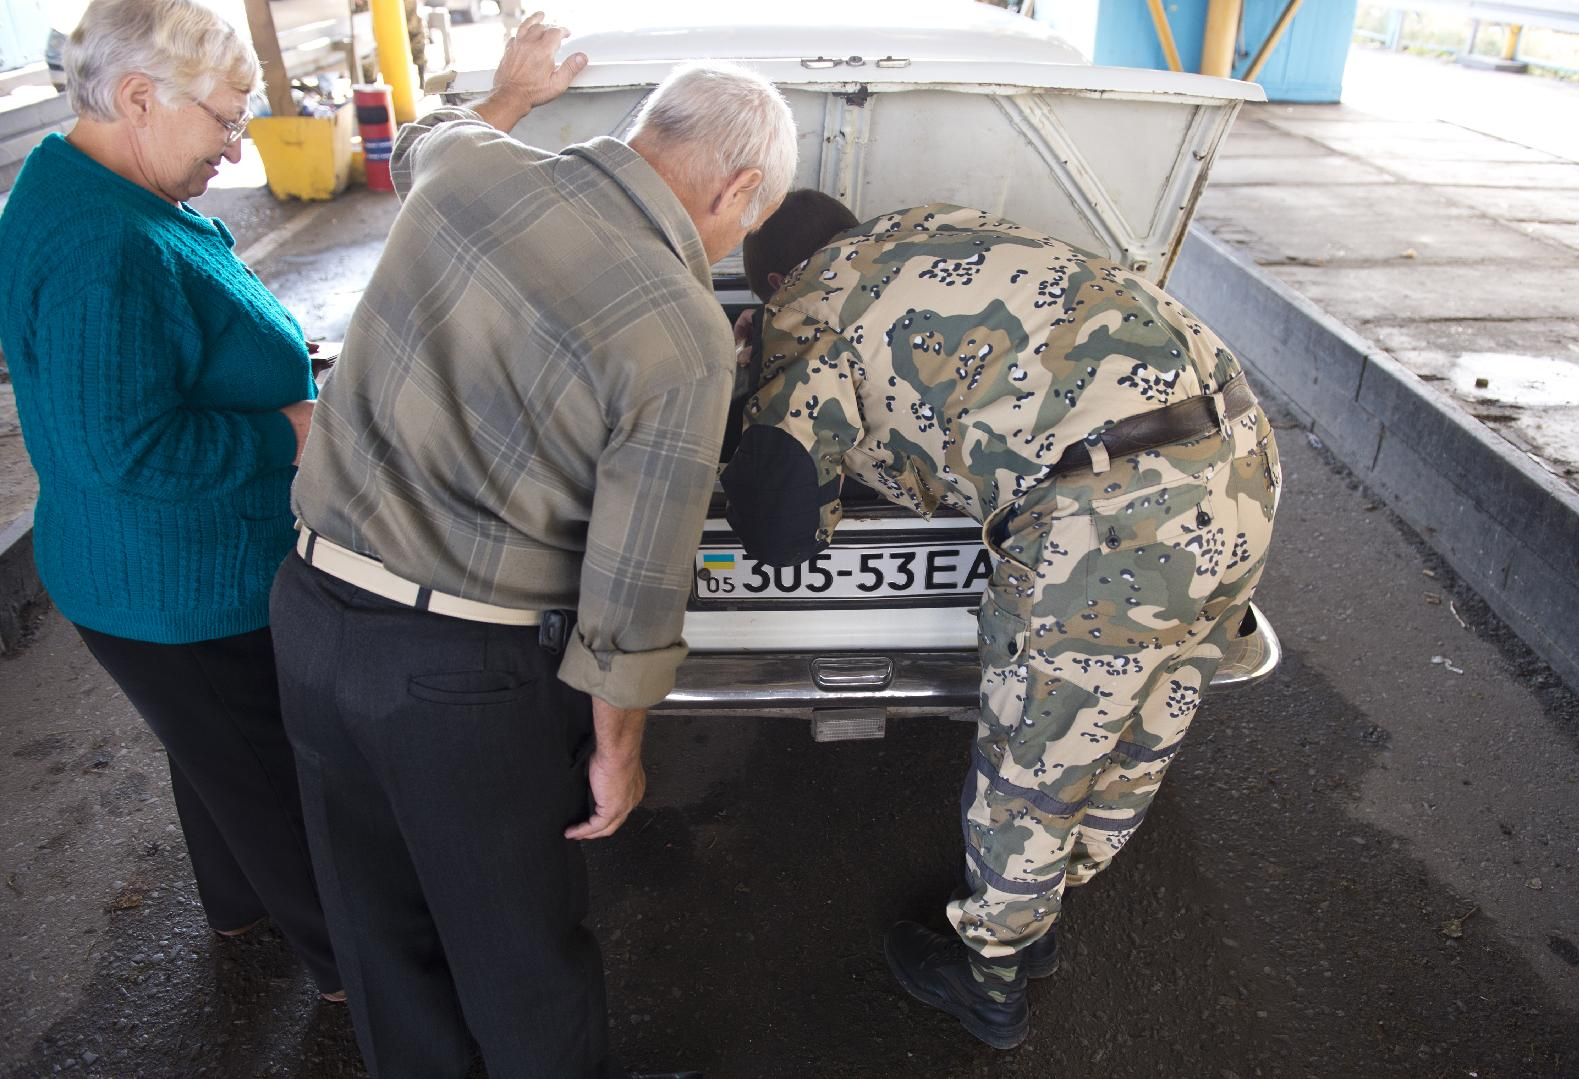 A pro-Russian separatist border guard searches a car on September 26, 2014 on its way from Ukraine to Russia at the Uspenka border post, held by separatists from the self-proclaimed People's Republic of Donetsk.